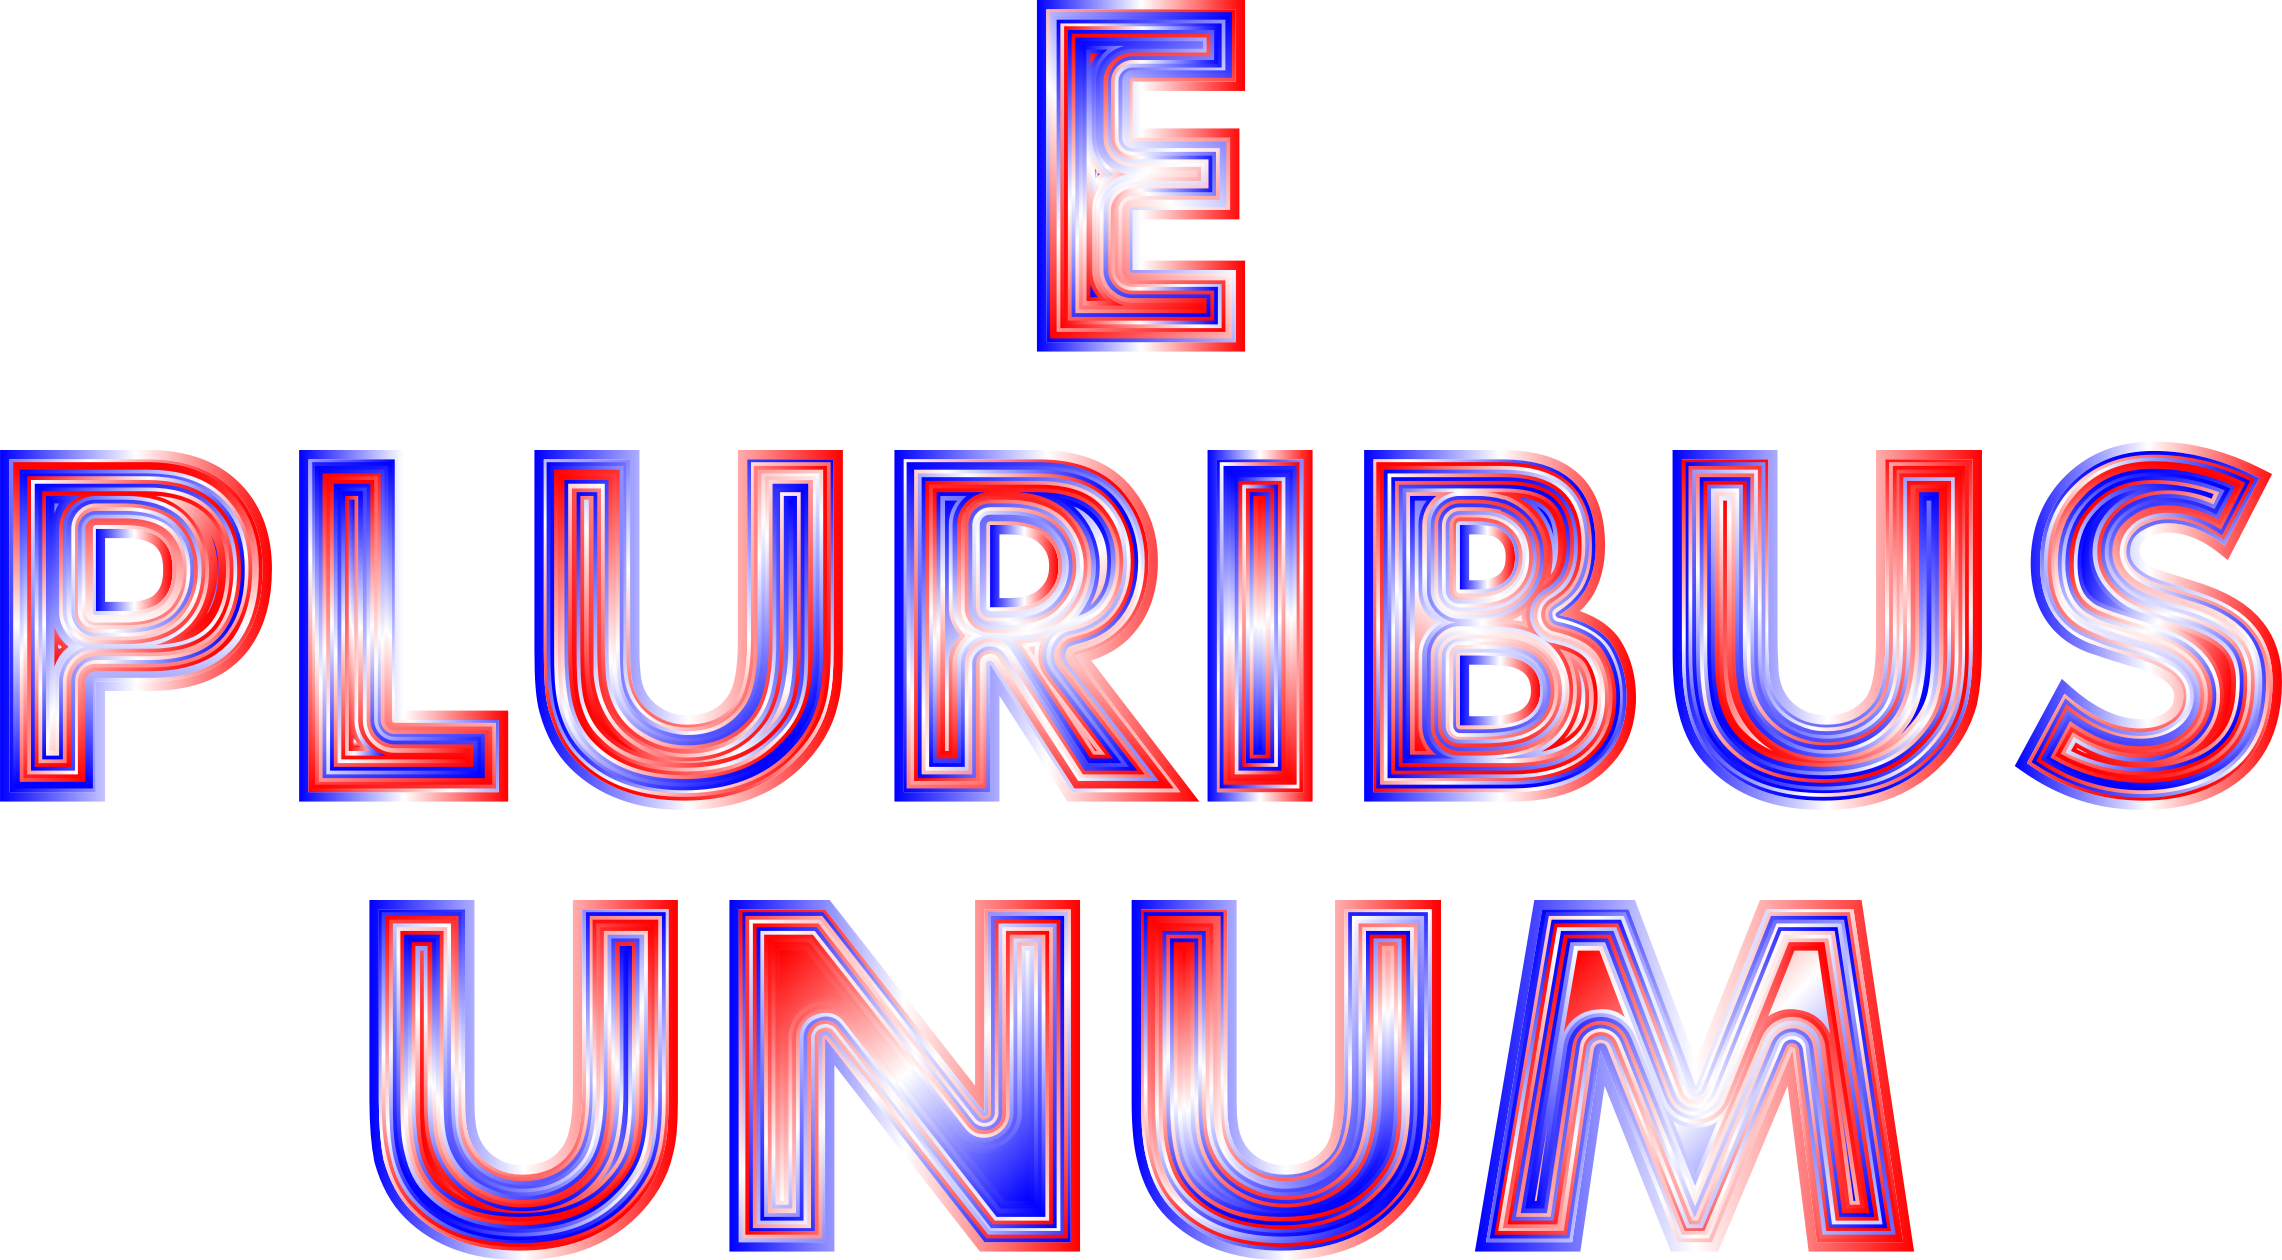 E Pluribus Unum Red White Blue Typography 2 No Background by GDJ